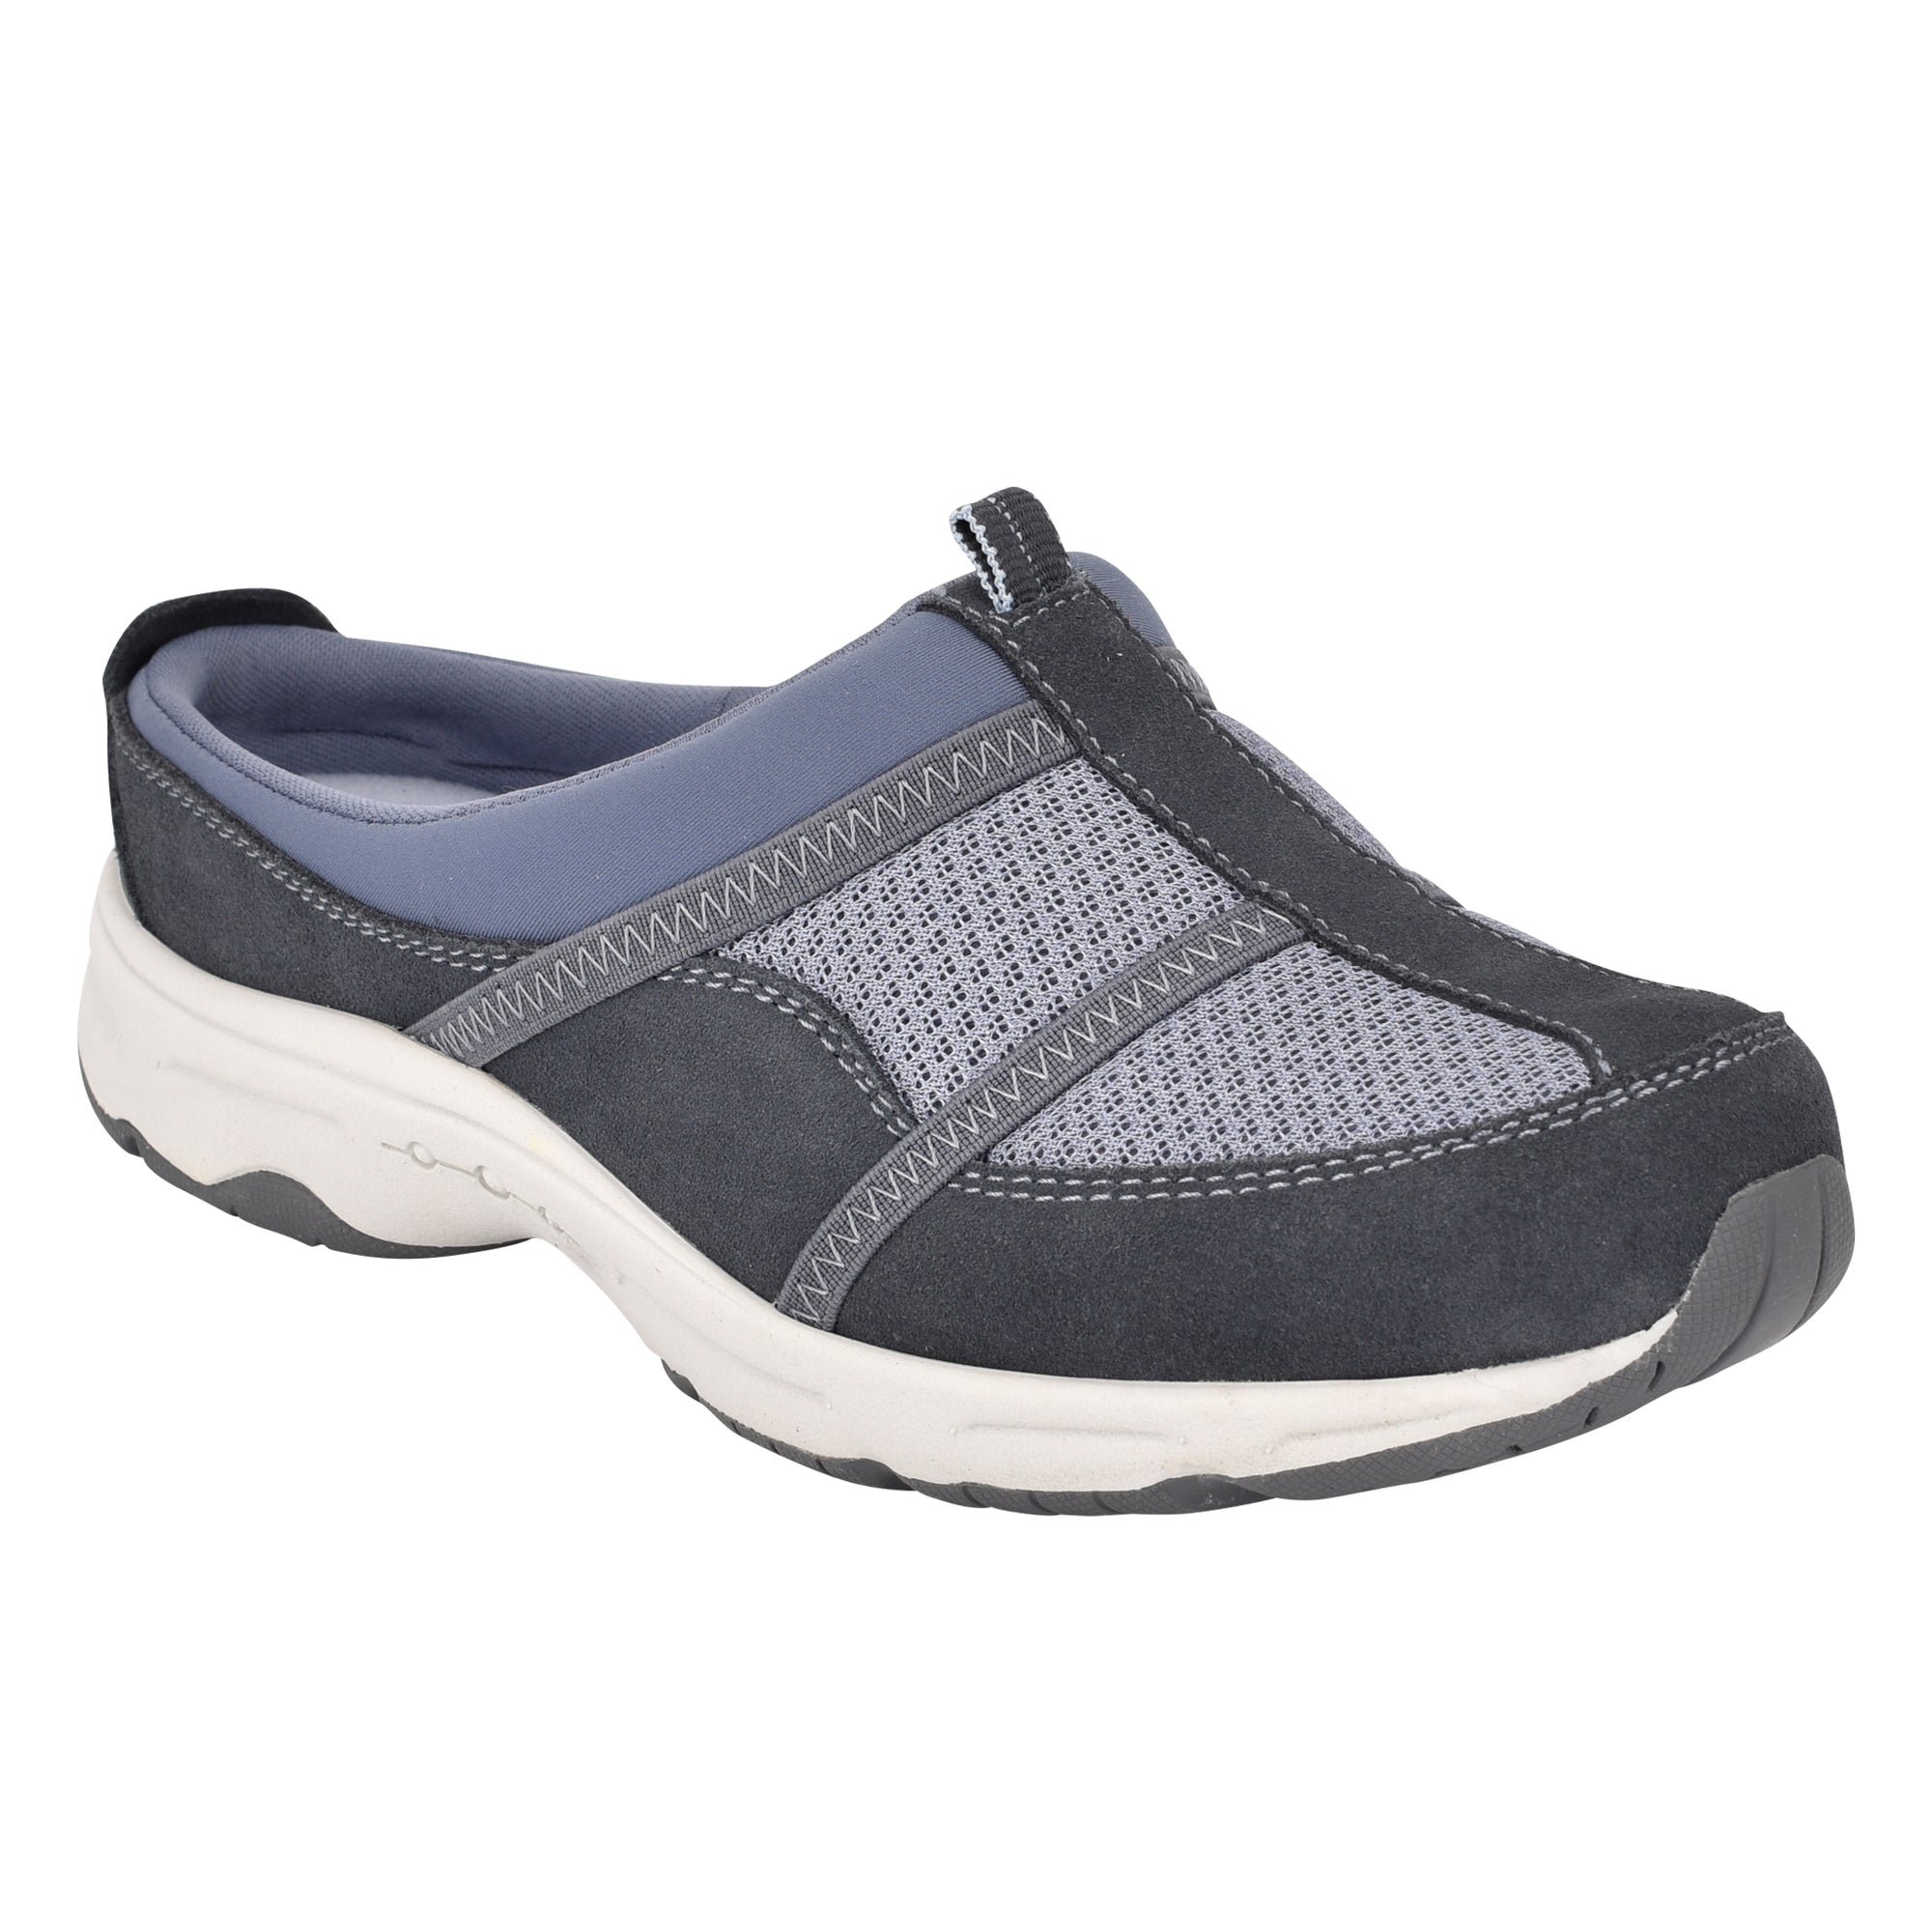 argyle-mesh-clogs-in-medium-blue-suede